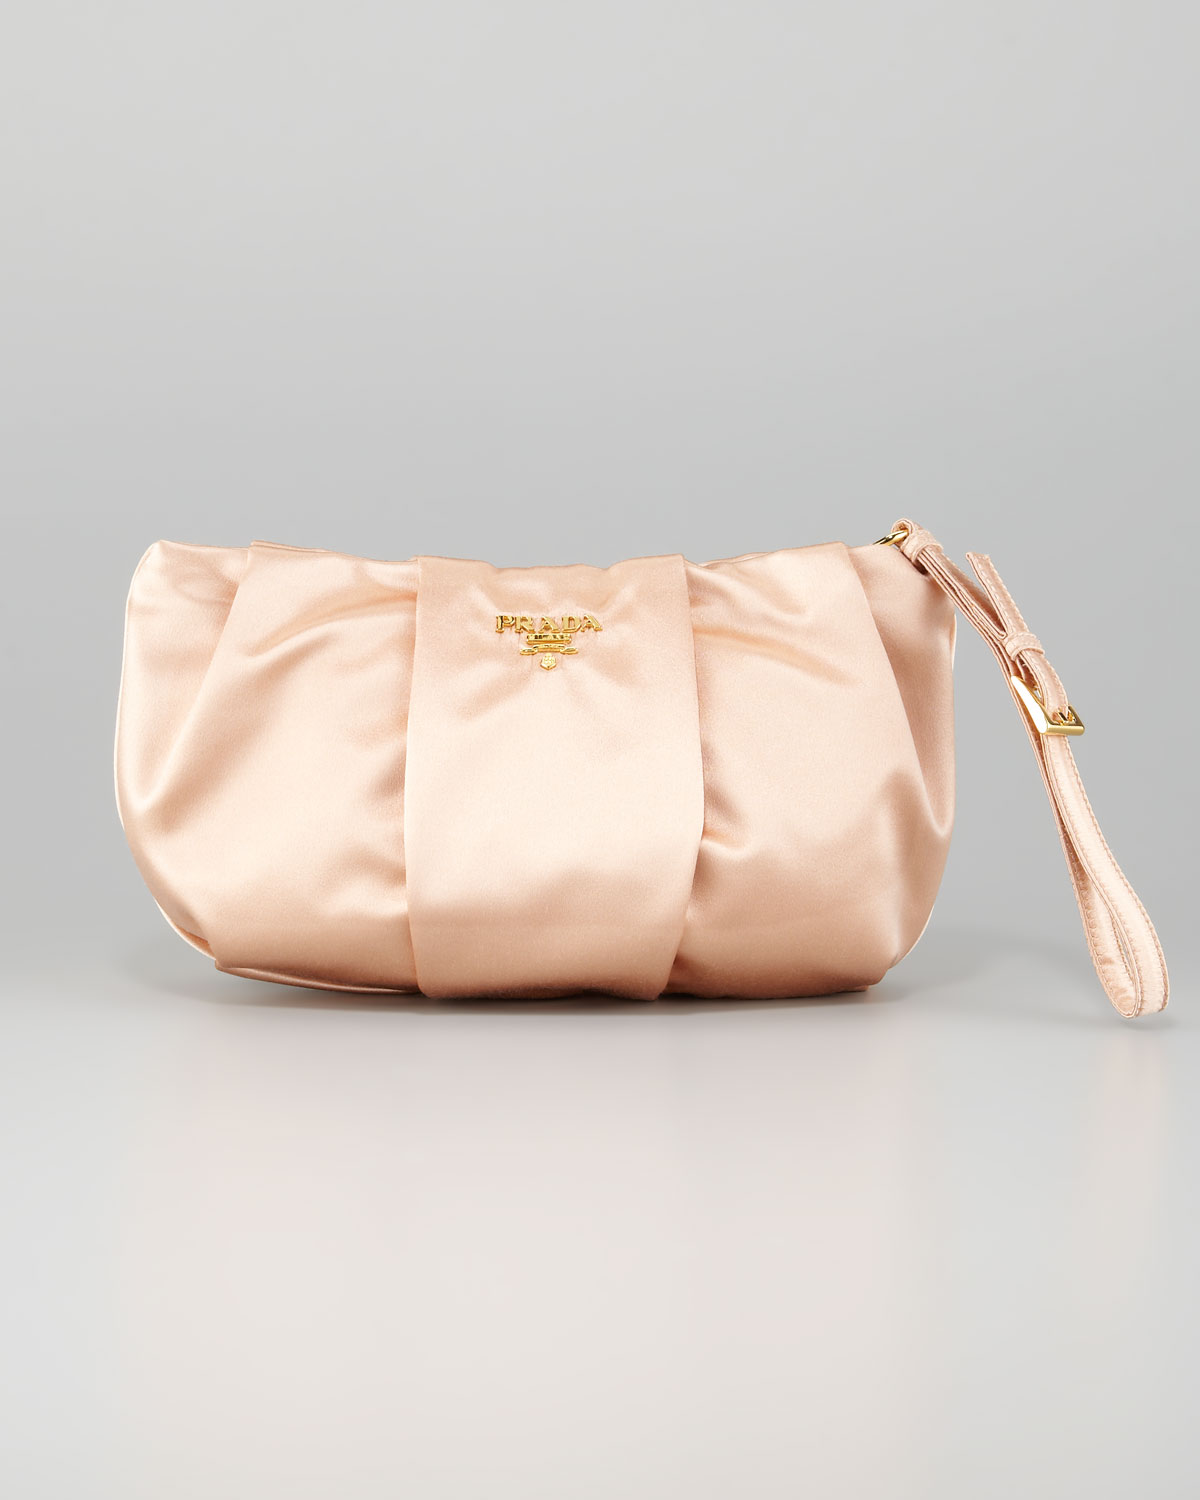 f1f8155e0d5c Lyst - Prada Satin Wristlet Bag in Natural